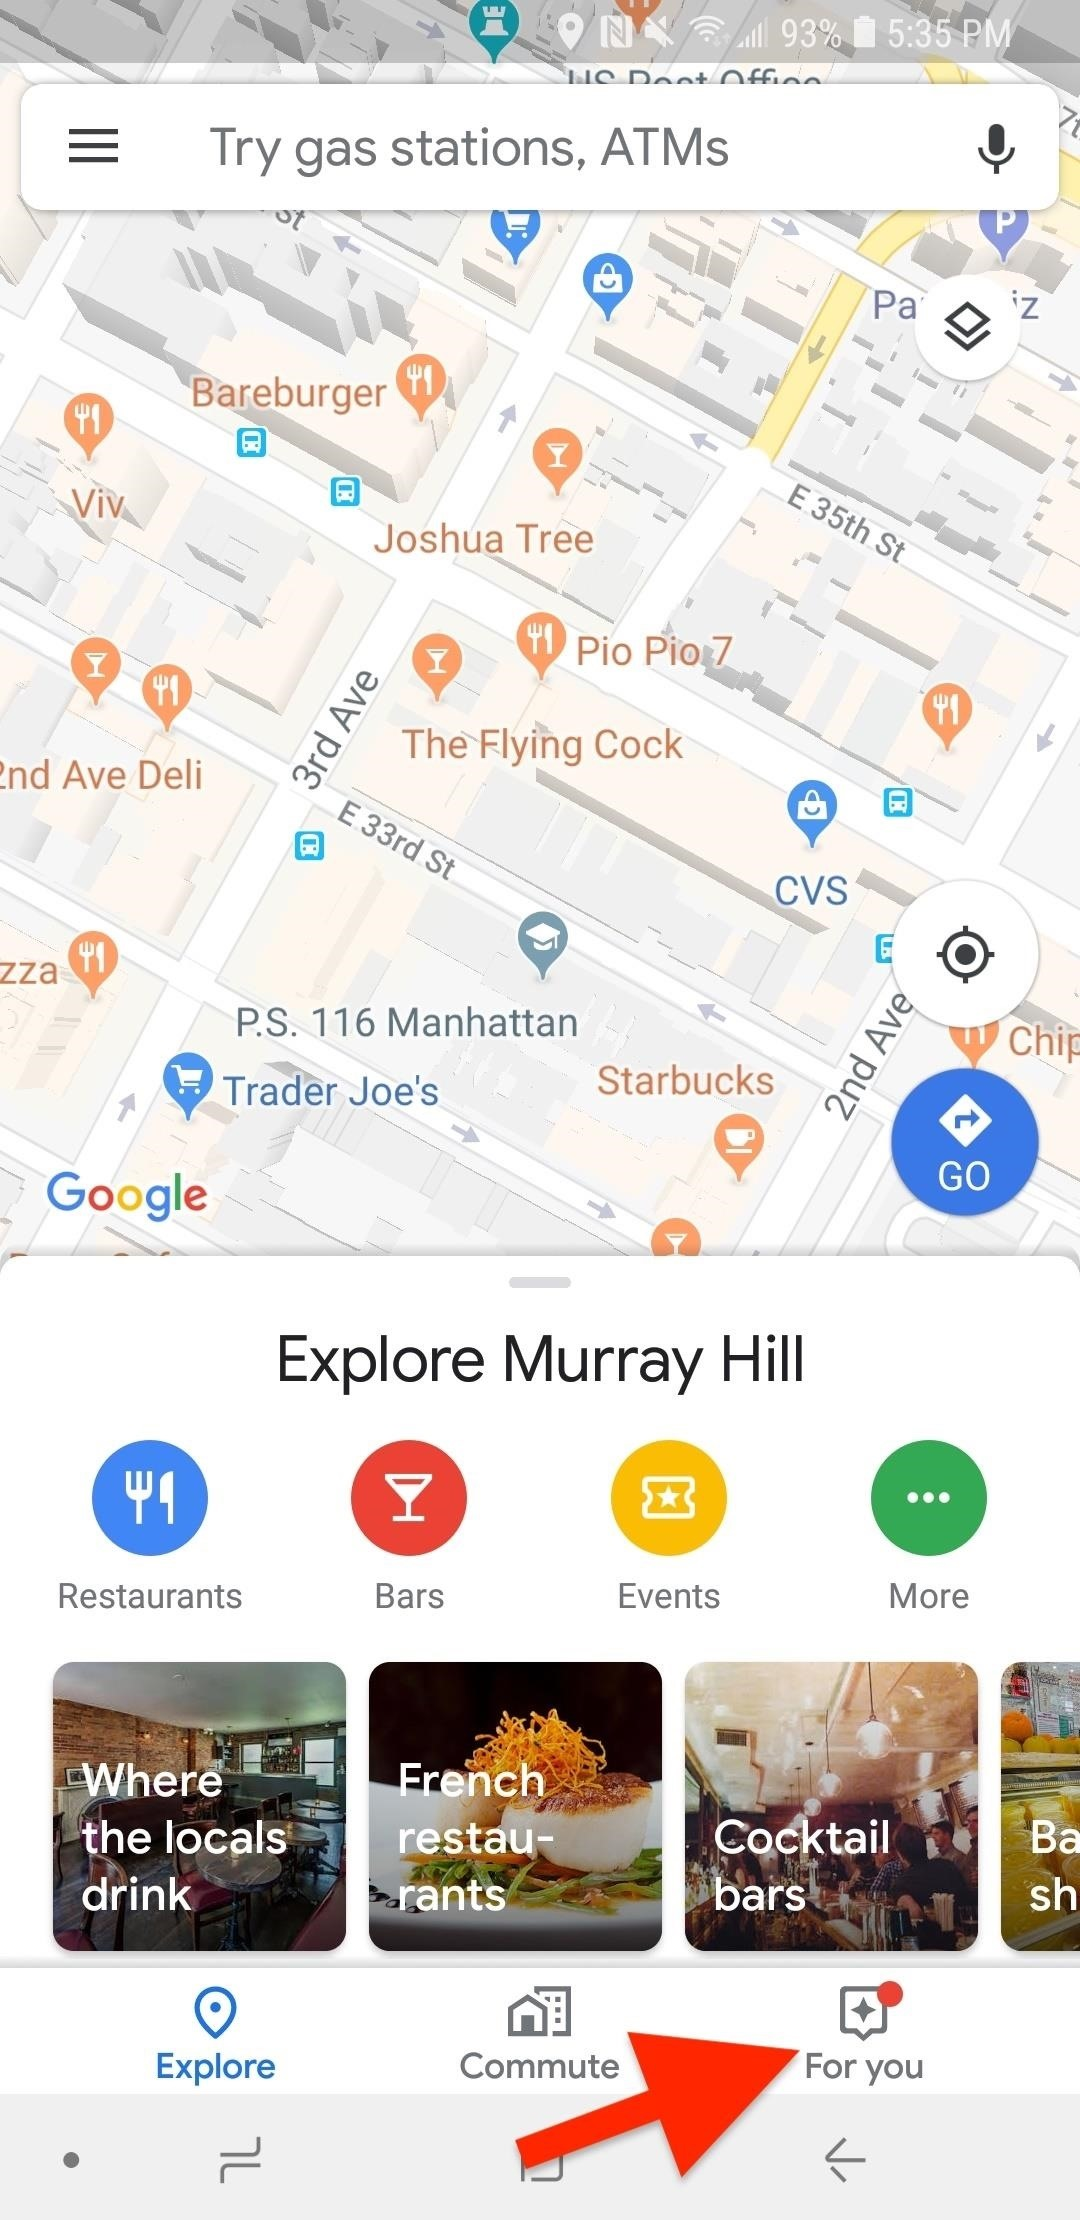 Follow Businesses on Google Maps to Stay Updated on Events & News for Your Favorite Spots